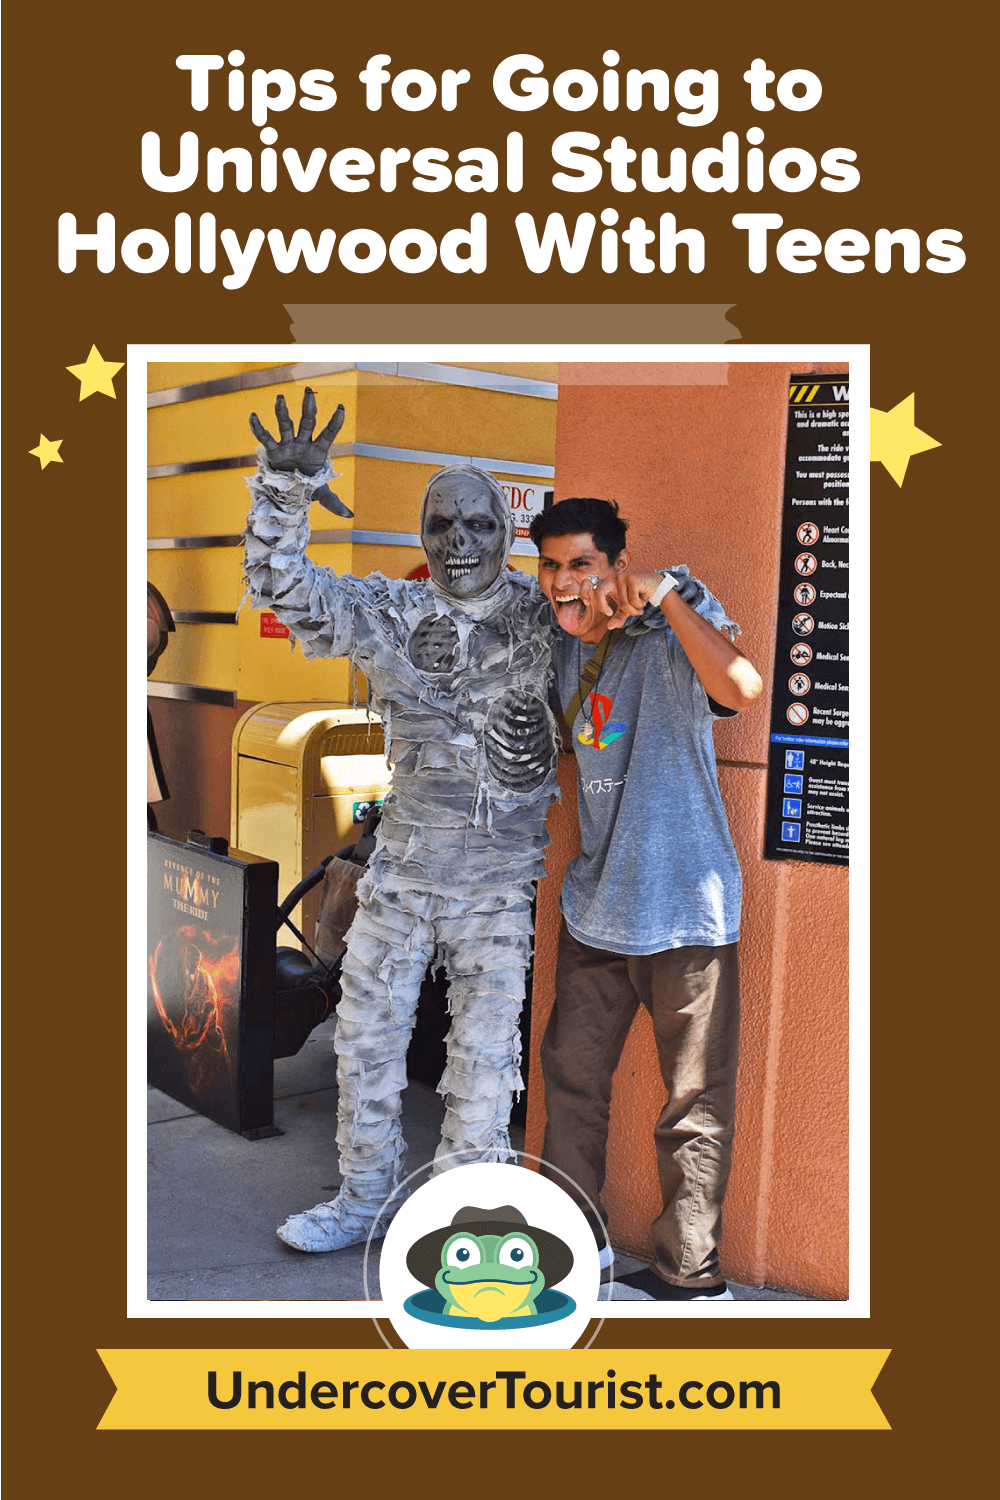 Tips for Going to Universal Studios Hollywood with Teens - Pinterest